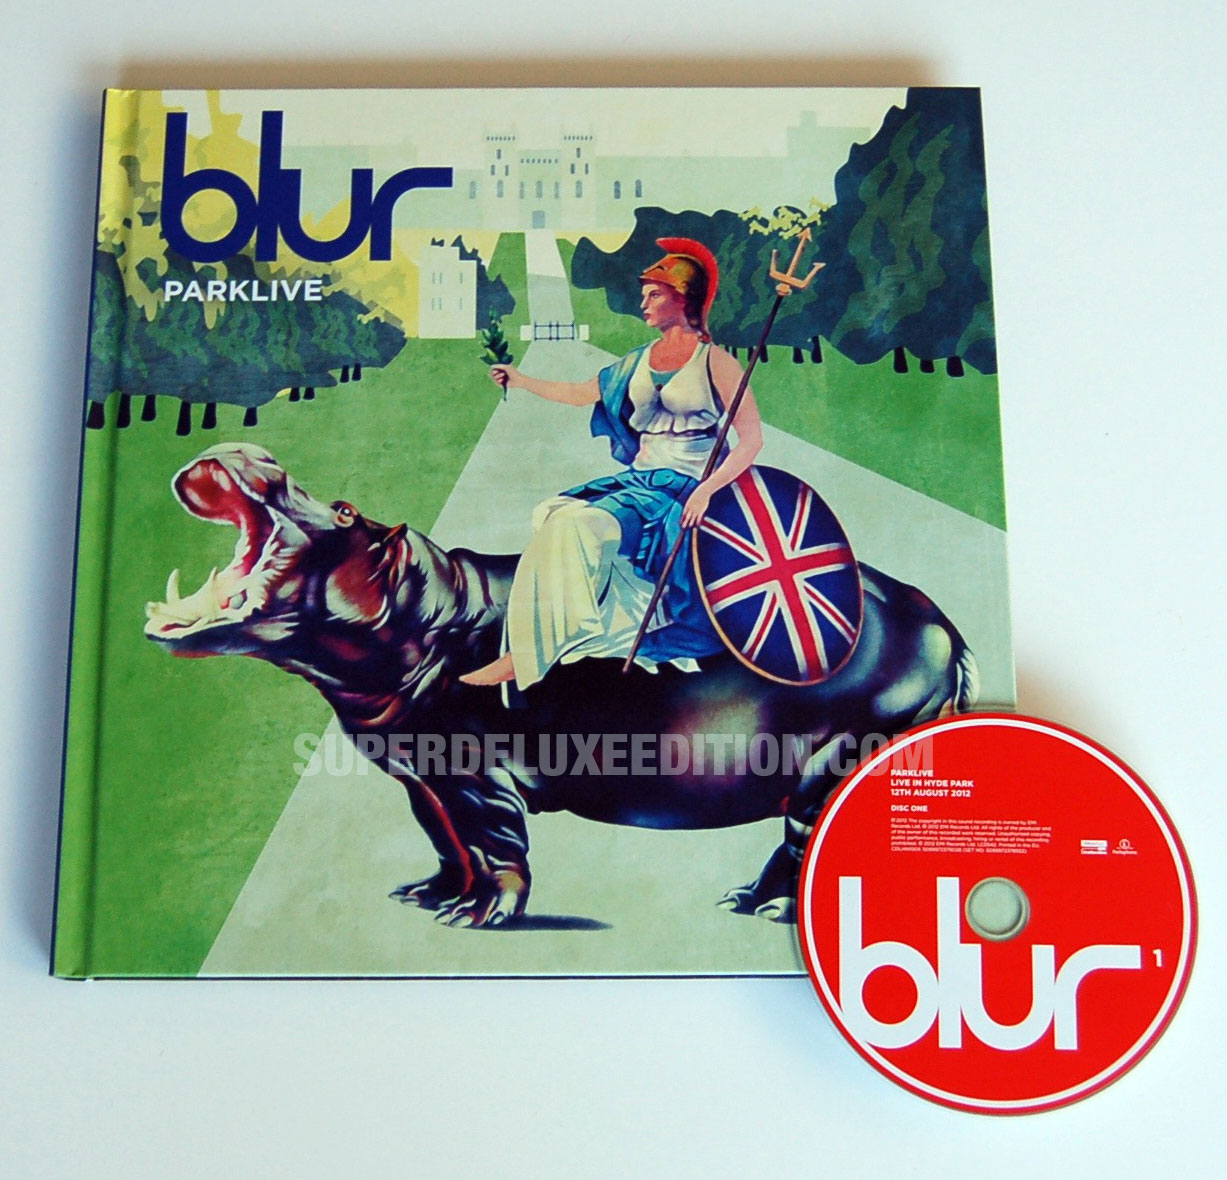 FIRST PICTURES / Blur Parklive 5-disc book edition